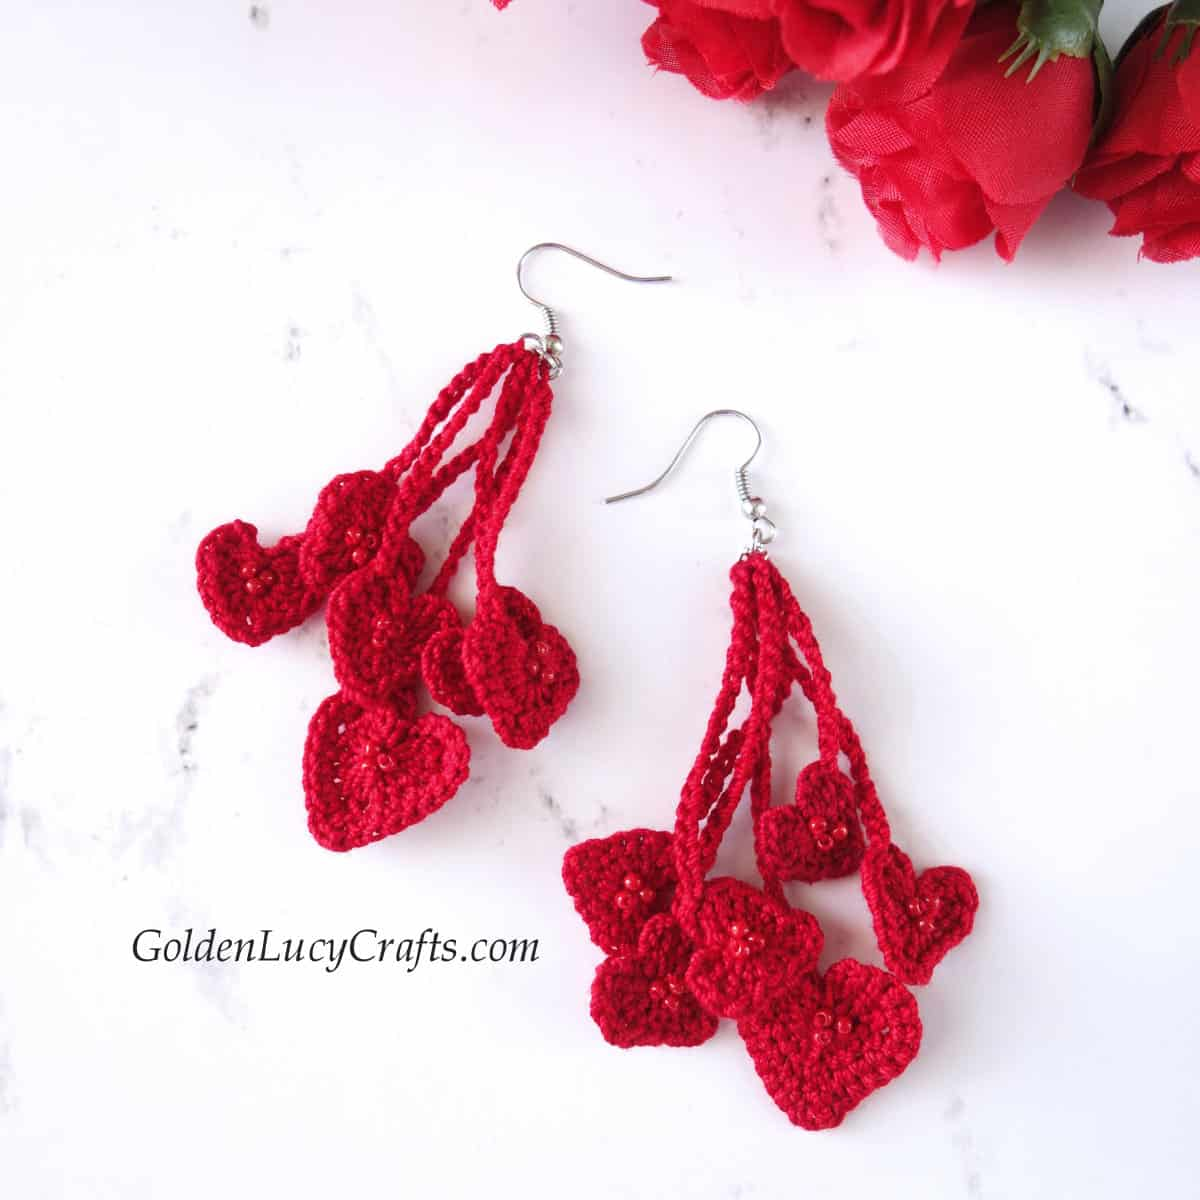 Crochet red heart earrings, roses on the background.